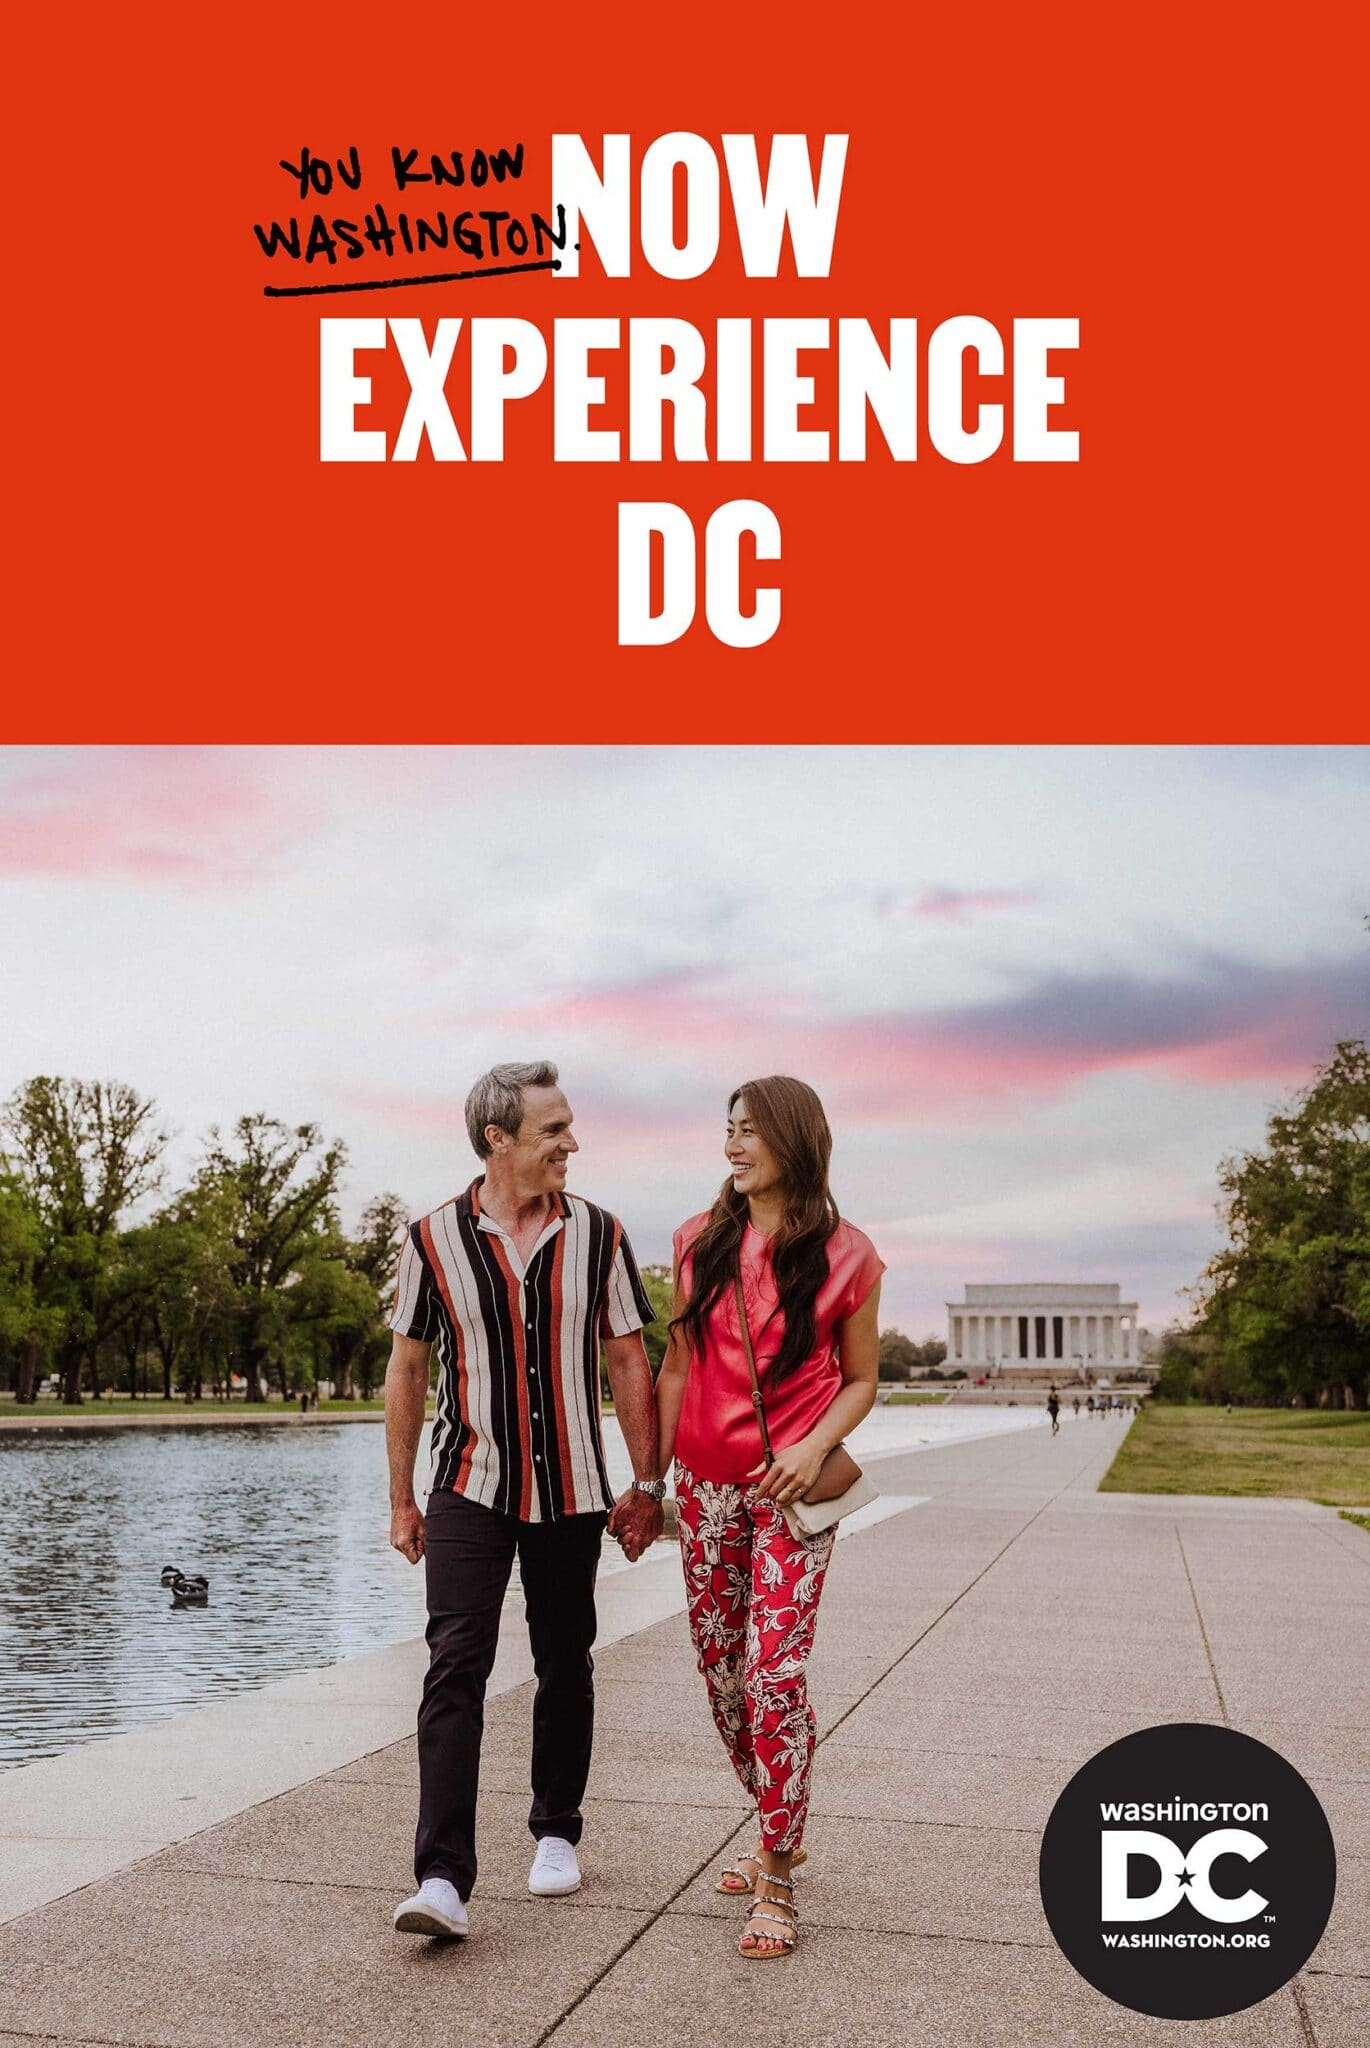 Experience-DC-Ad-Boards_Page_7